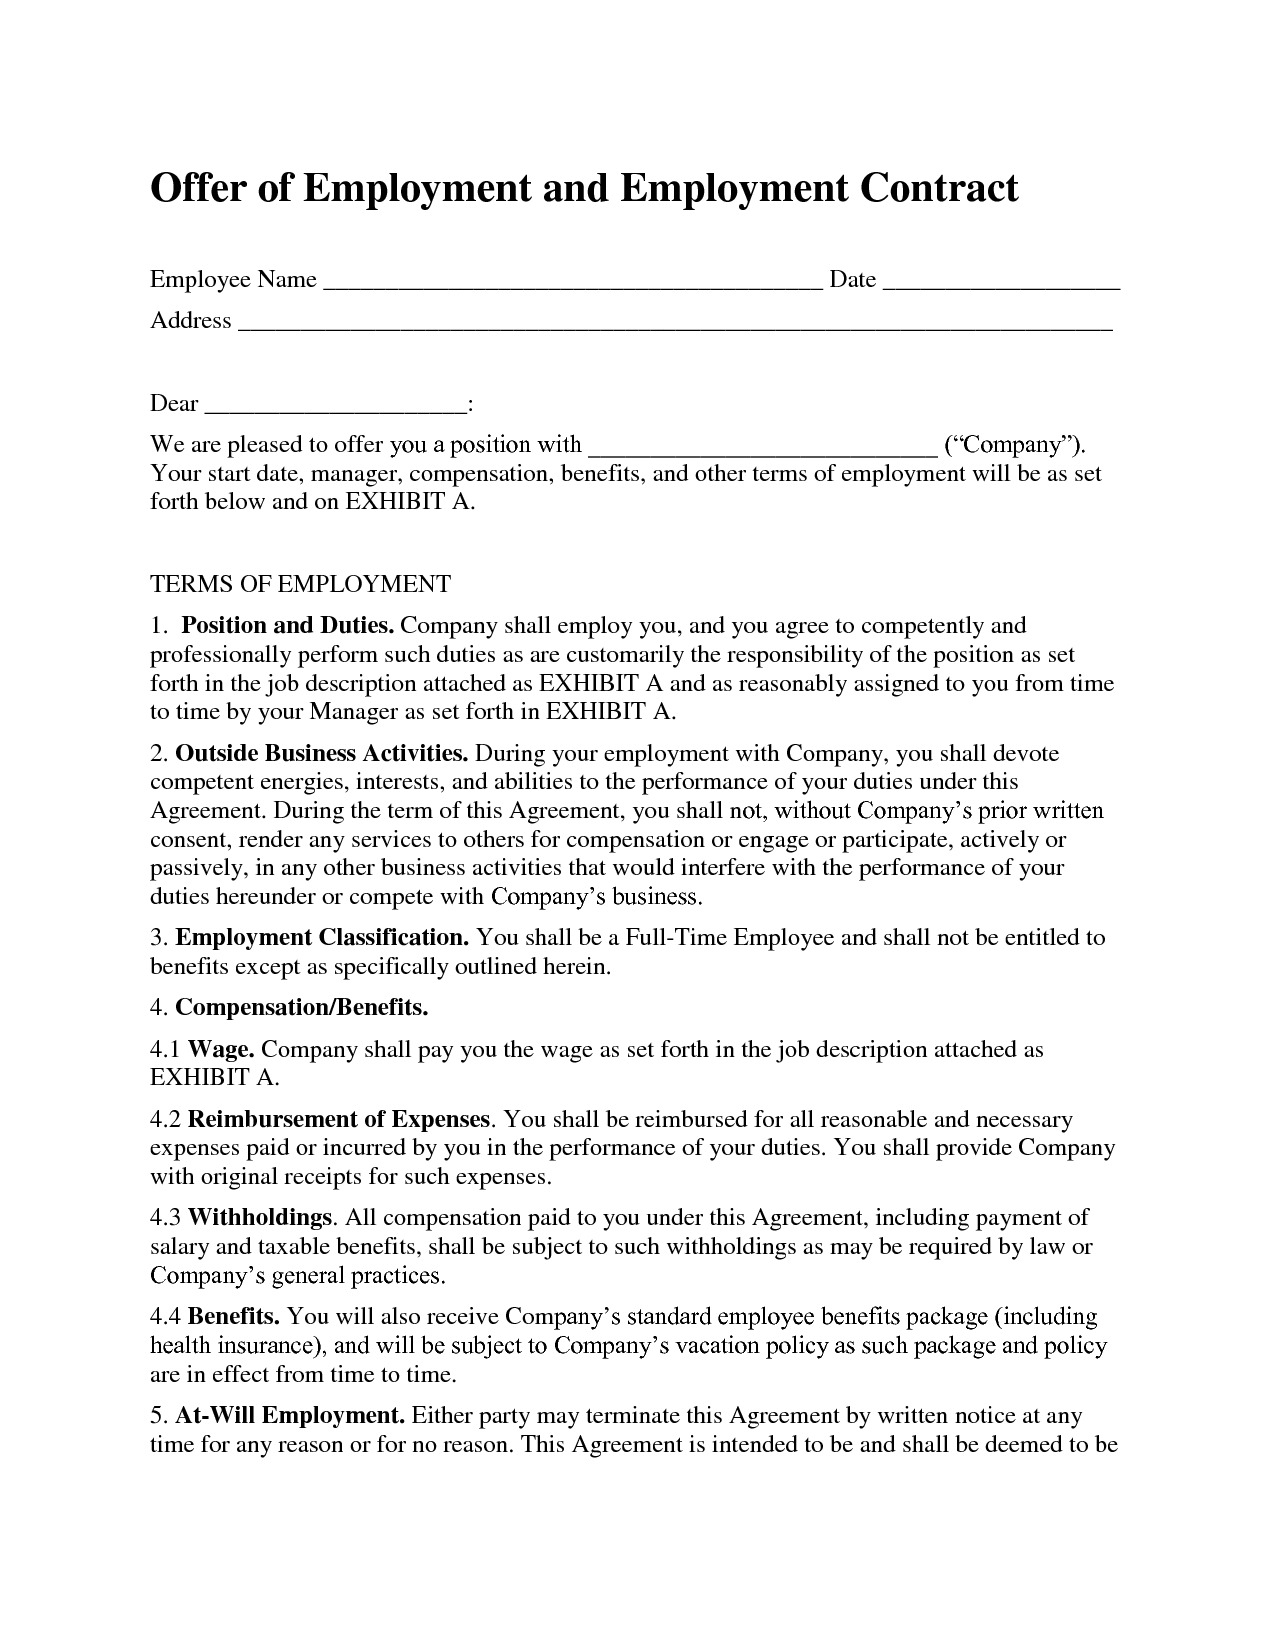 Pin Sample Contracts Employment Contract Business Agreements on 915QRERW